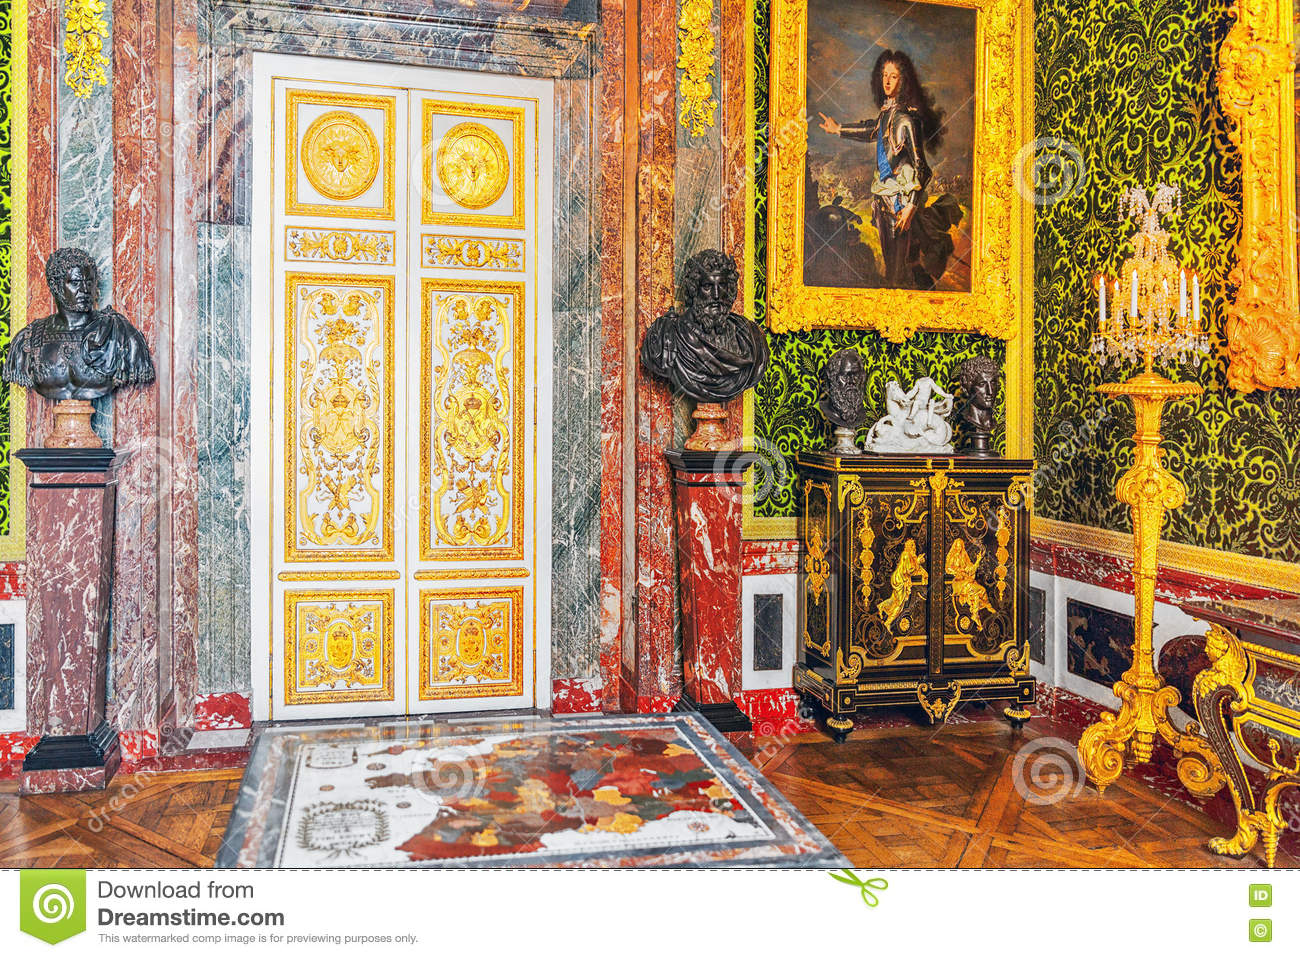 Salon of abundance is versailles editorial stock image - Salon de chat francais ...